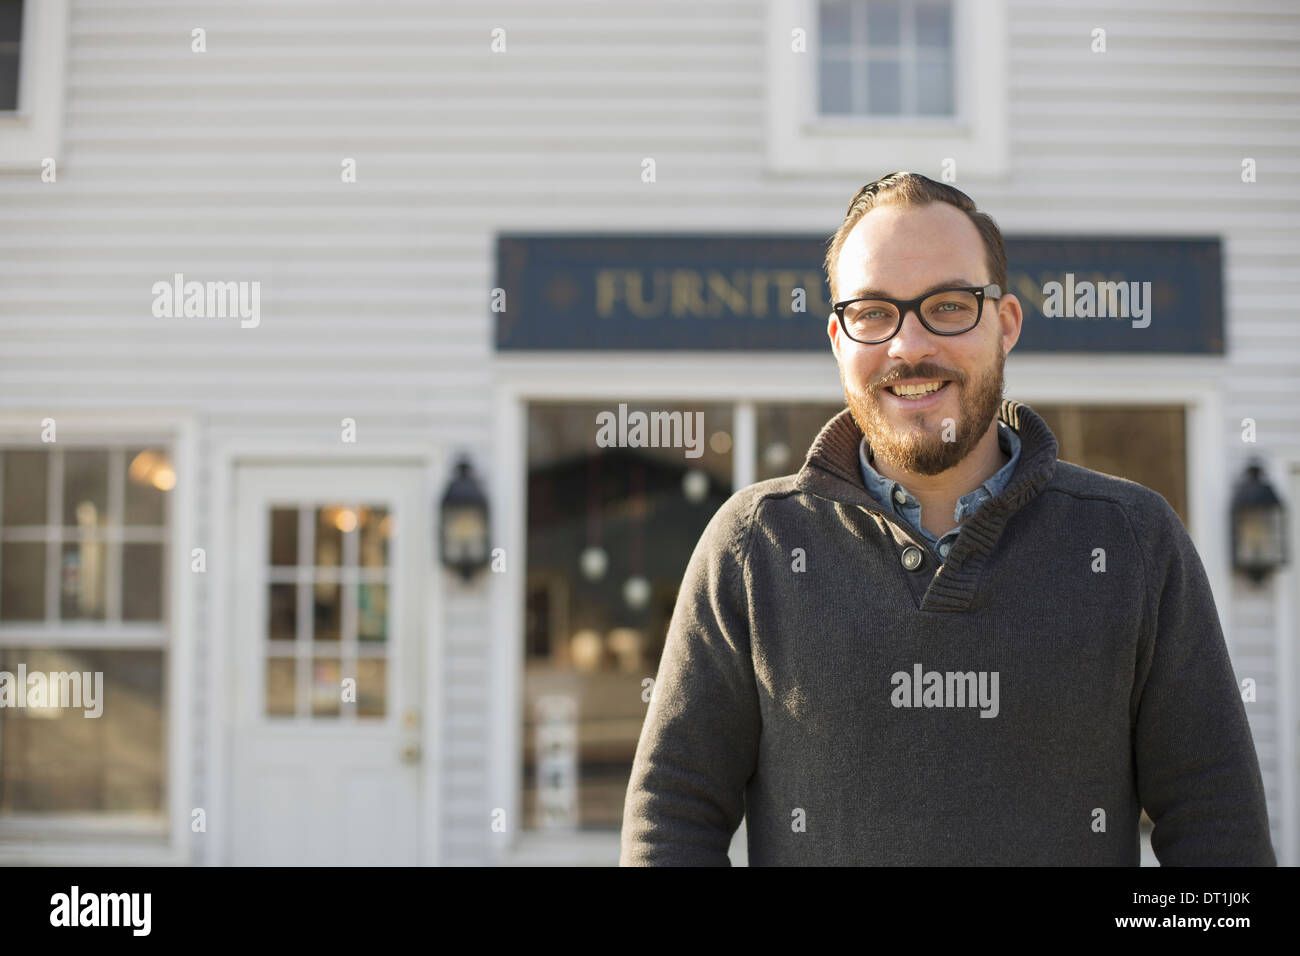 A man standing outside a store on street Antique store - Stock Image